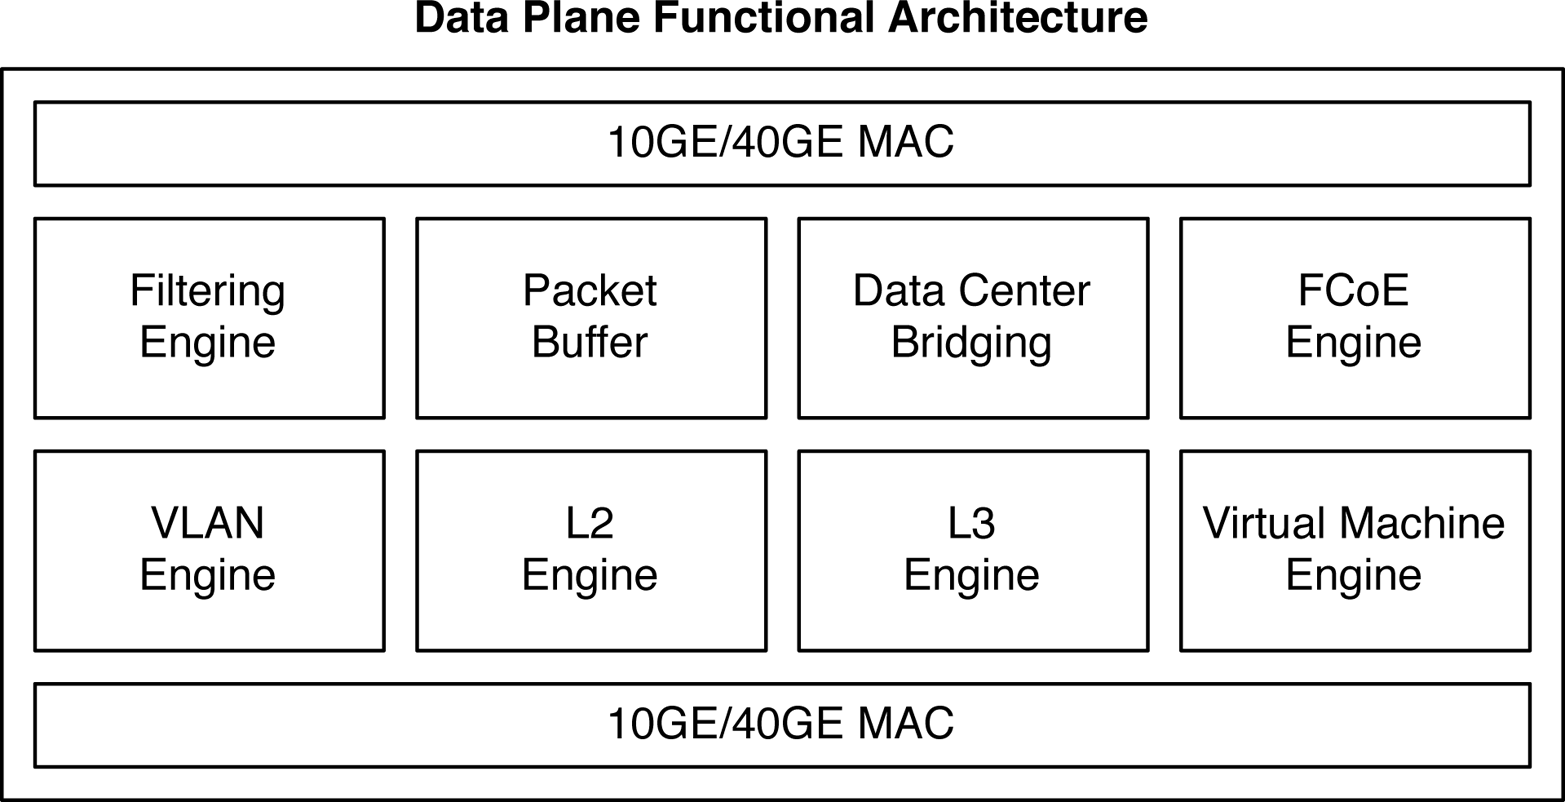 Data plane functional architecture